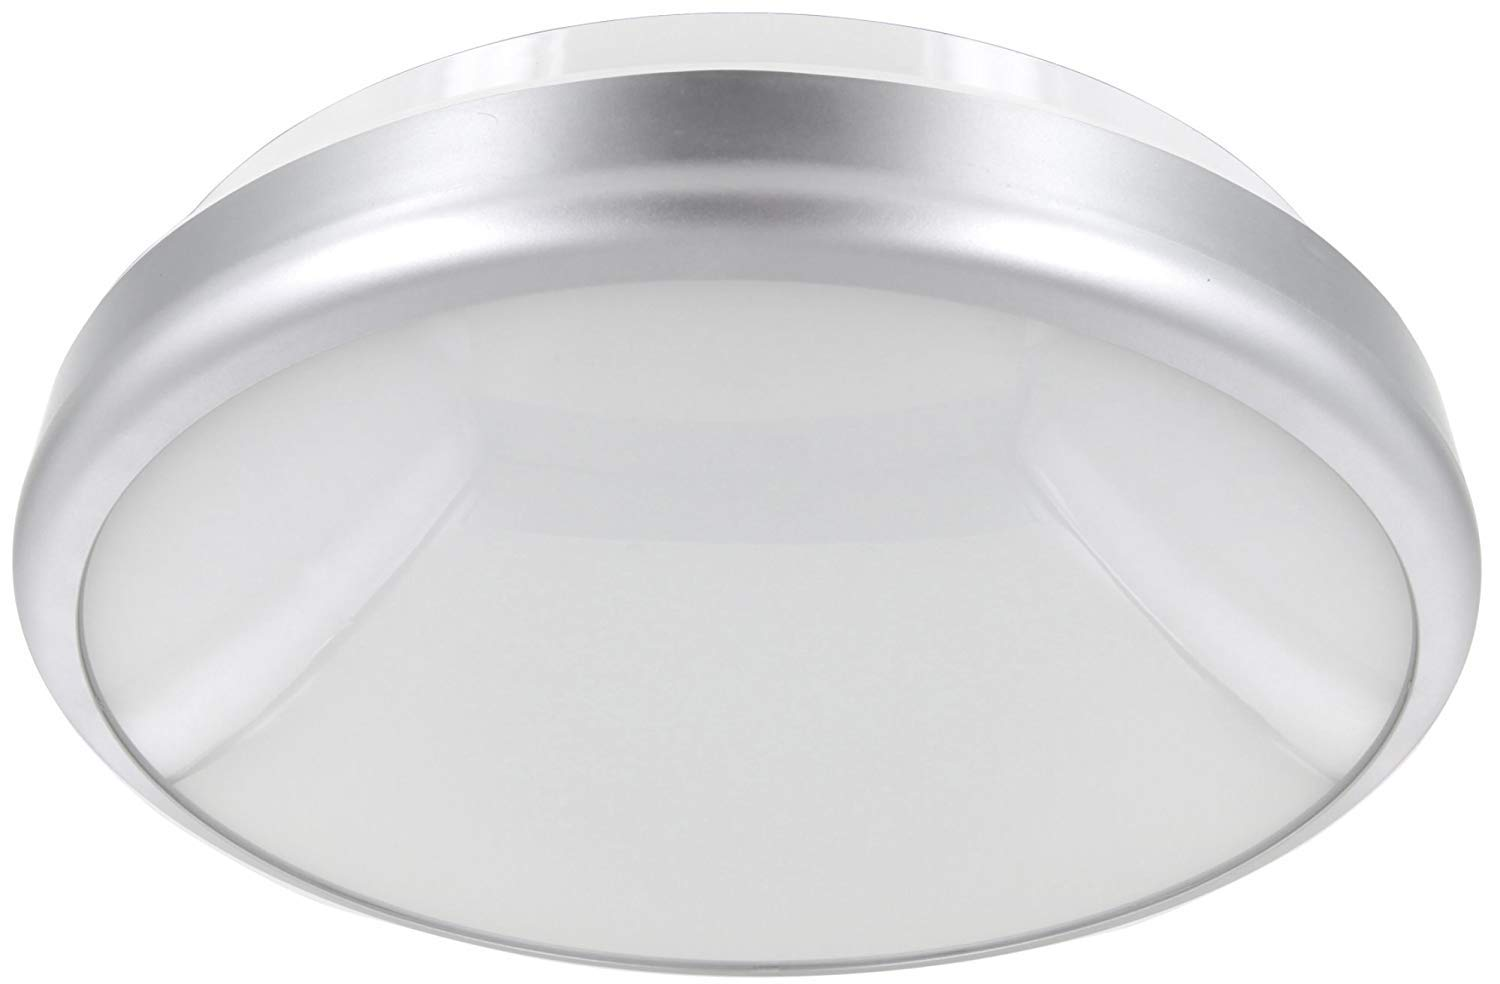 plafoniera LED 30 W, IP65 – 2800 lm – Ø 300 x 80 mm – Bianco caldo (2700 K) IP65 - 2800 lm - Ø 300 x 80 mm - Bianco caldo (2700 K) HAVA